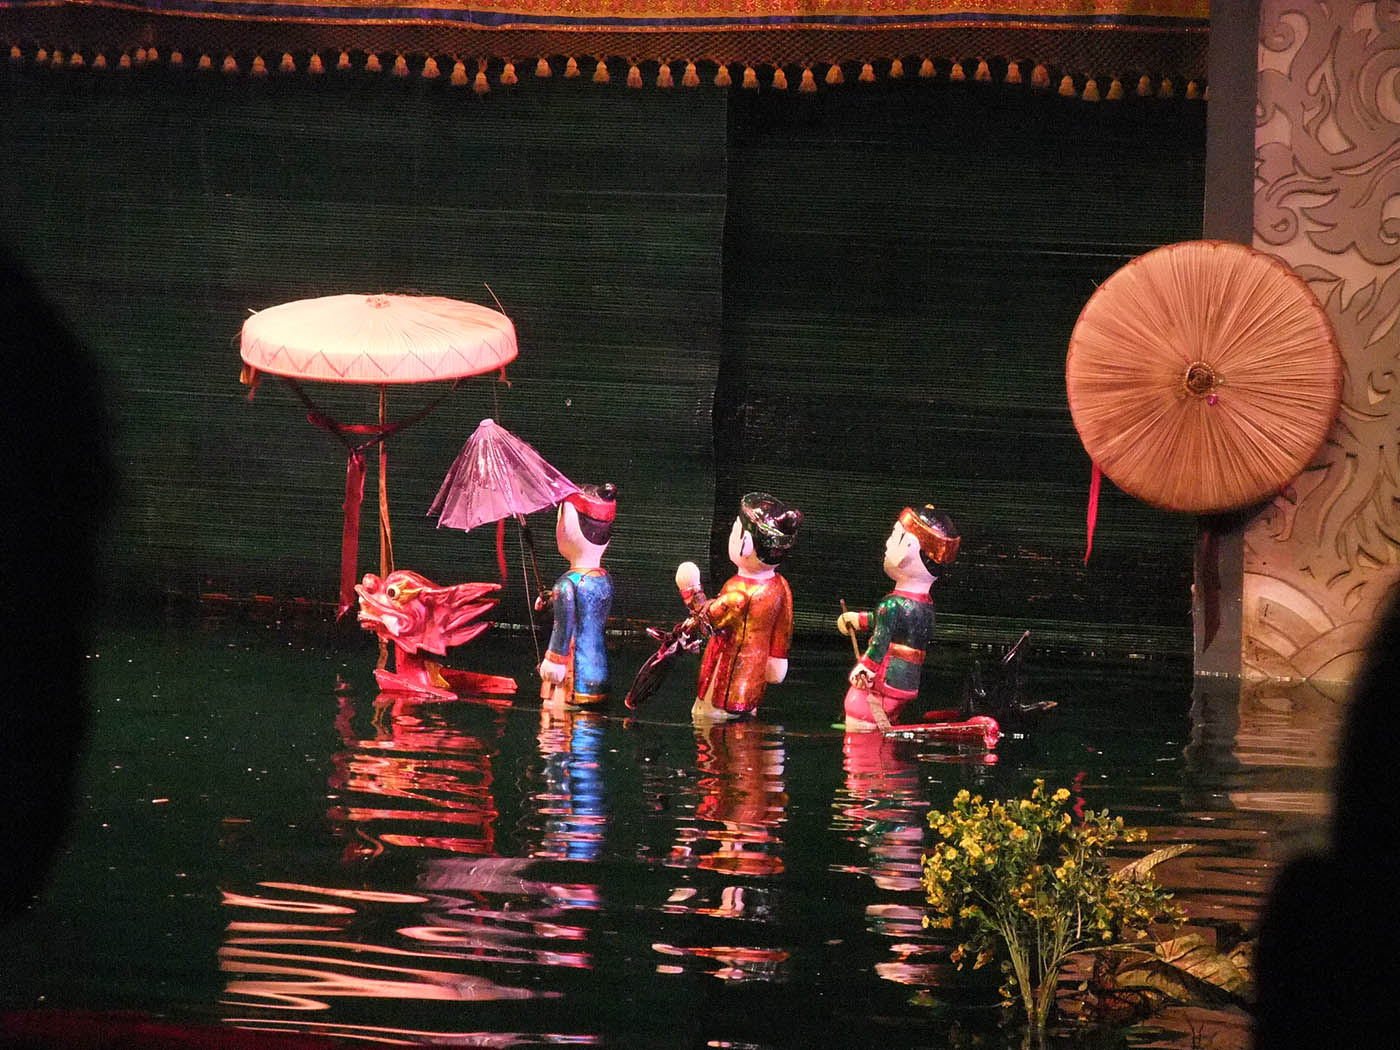 Top 12 must-visit attractions in Hanoi - Thang Long Water Puppet Theater